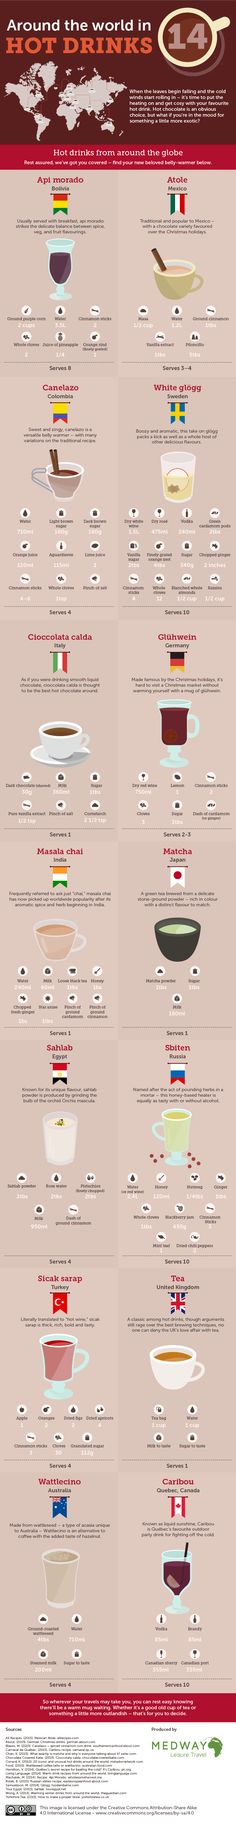 Infographic Around the World in 14 Hot Drinks